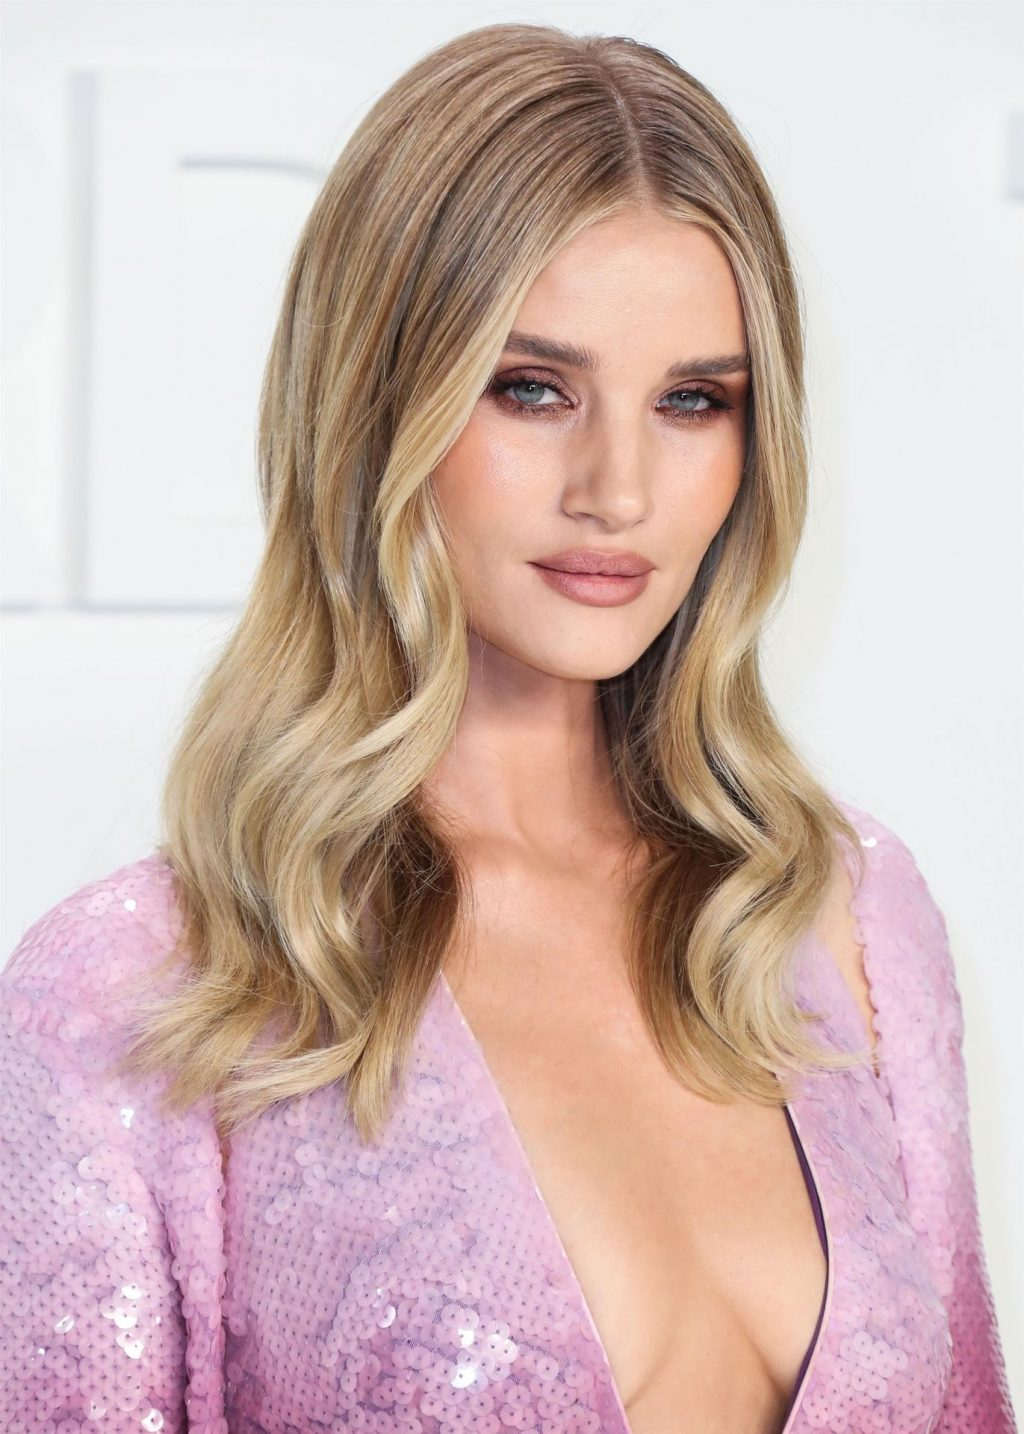 Rosie Huntington Whiteley Sexy The Fappening Blog 50 1024x1434 - Rosie Huntington-Whiteley Shows Her Cleavage at the Tom Ford Fashion Show (115 Photos)